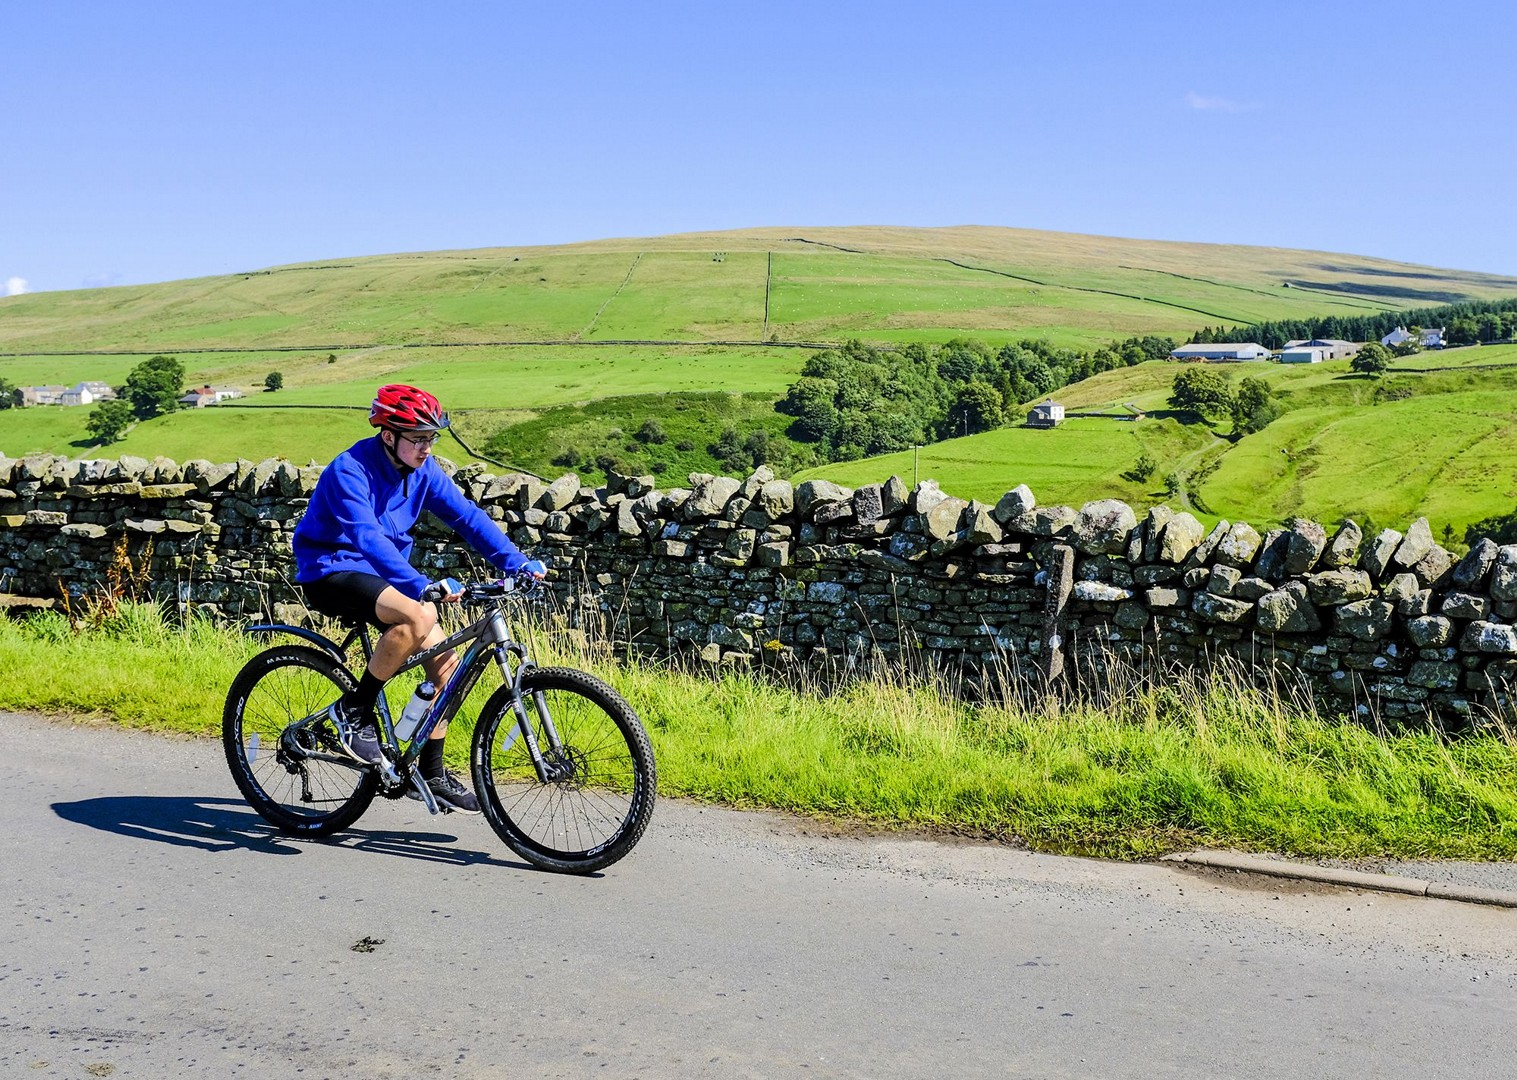 traditional-british-fields-with-friends-and-family-trip-cycling-holiday.jpg - UK - C2C - Coast to Coast 4 Days Cycling - Self-Guided Leisure Cycling Holiday - Leisure Cycling